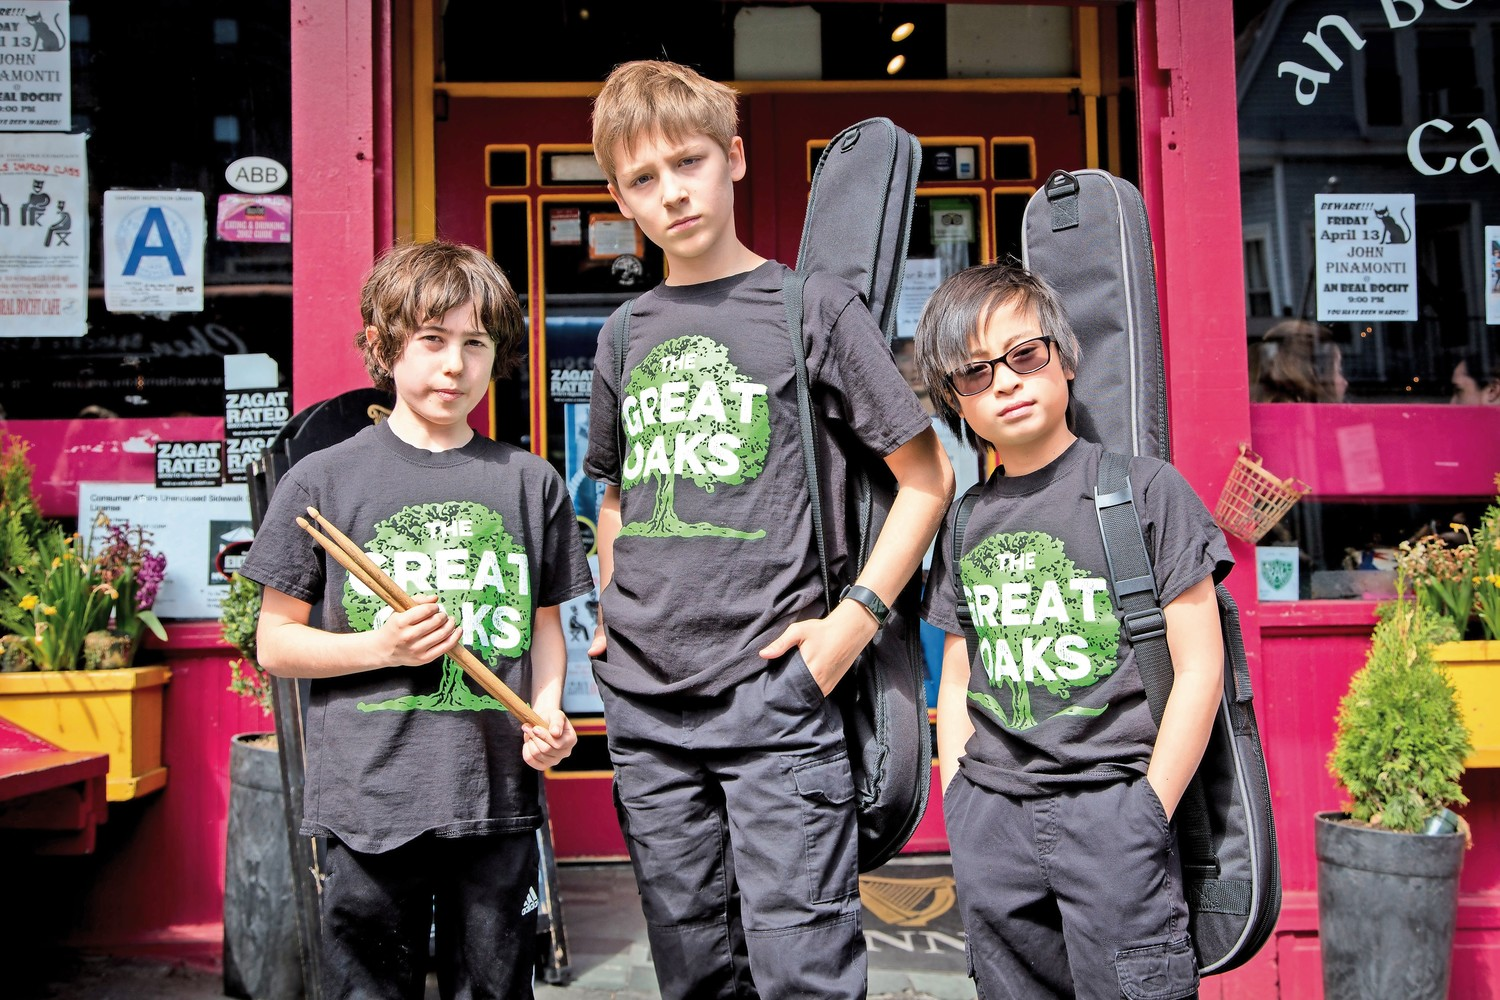 The Great Oaks is a band consisting of 10-year-old Oscar Smith on drums, 11-year-old Kian Hecht on guitar, center, and 10-year-old Alex Arbucci on bass. They all sing. The word 'Oaks' derives the bandmates? first initials.